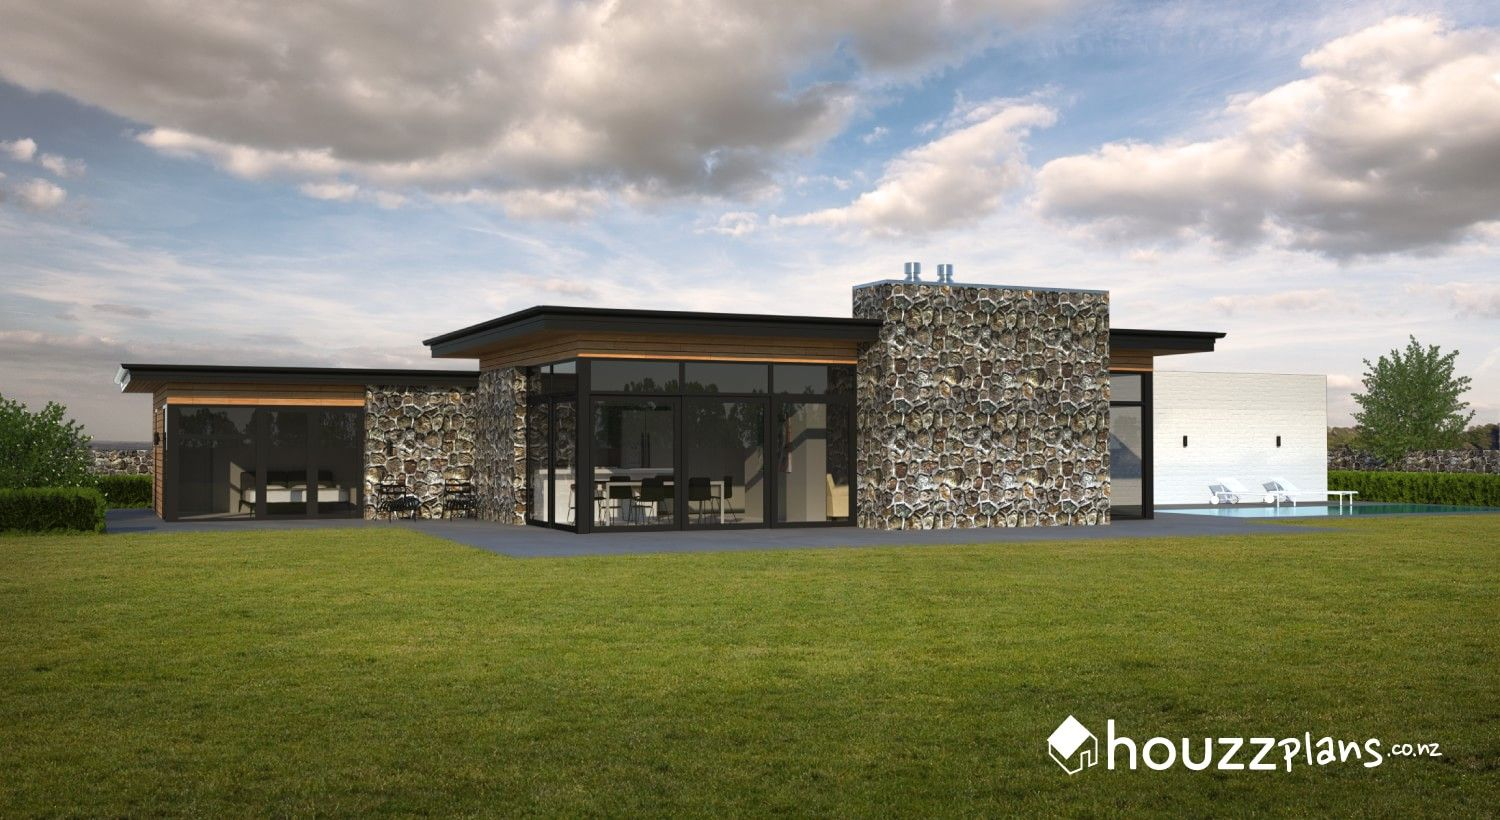 Ryder Modern Contemporary House Plan Browse All House Plans Here Www Houzzplans Co Nz New House Plans Modern Contemporary House Plans House Plans